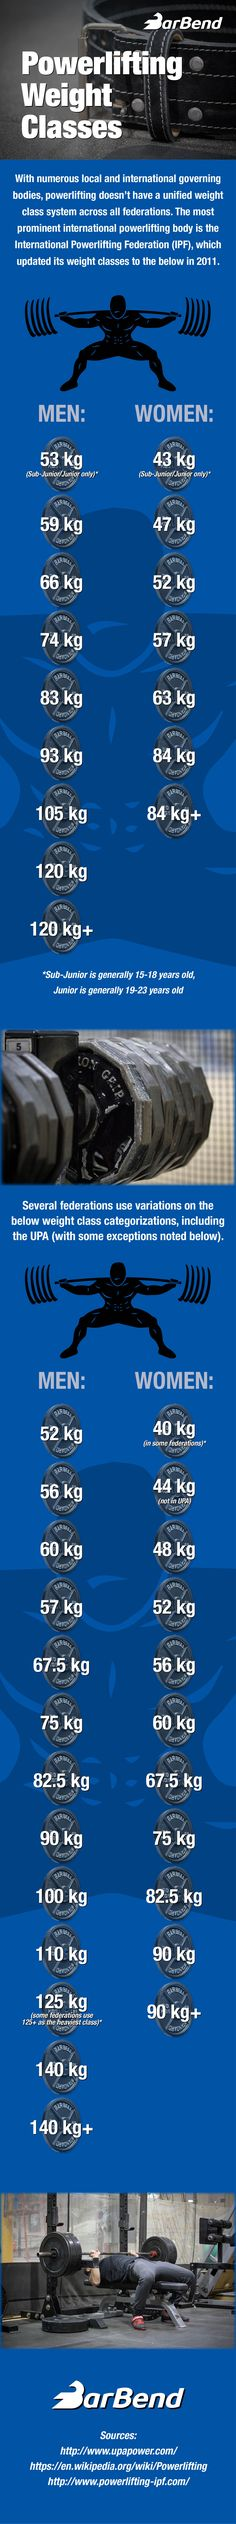 These are the powerlifting weight classes across federations.